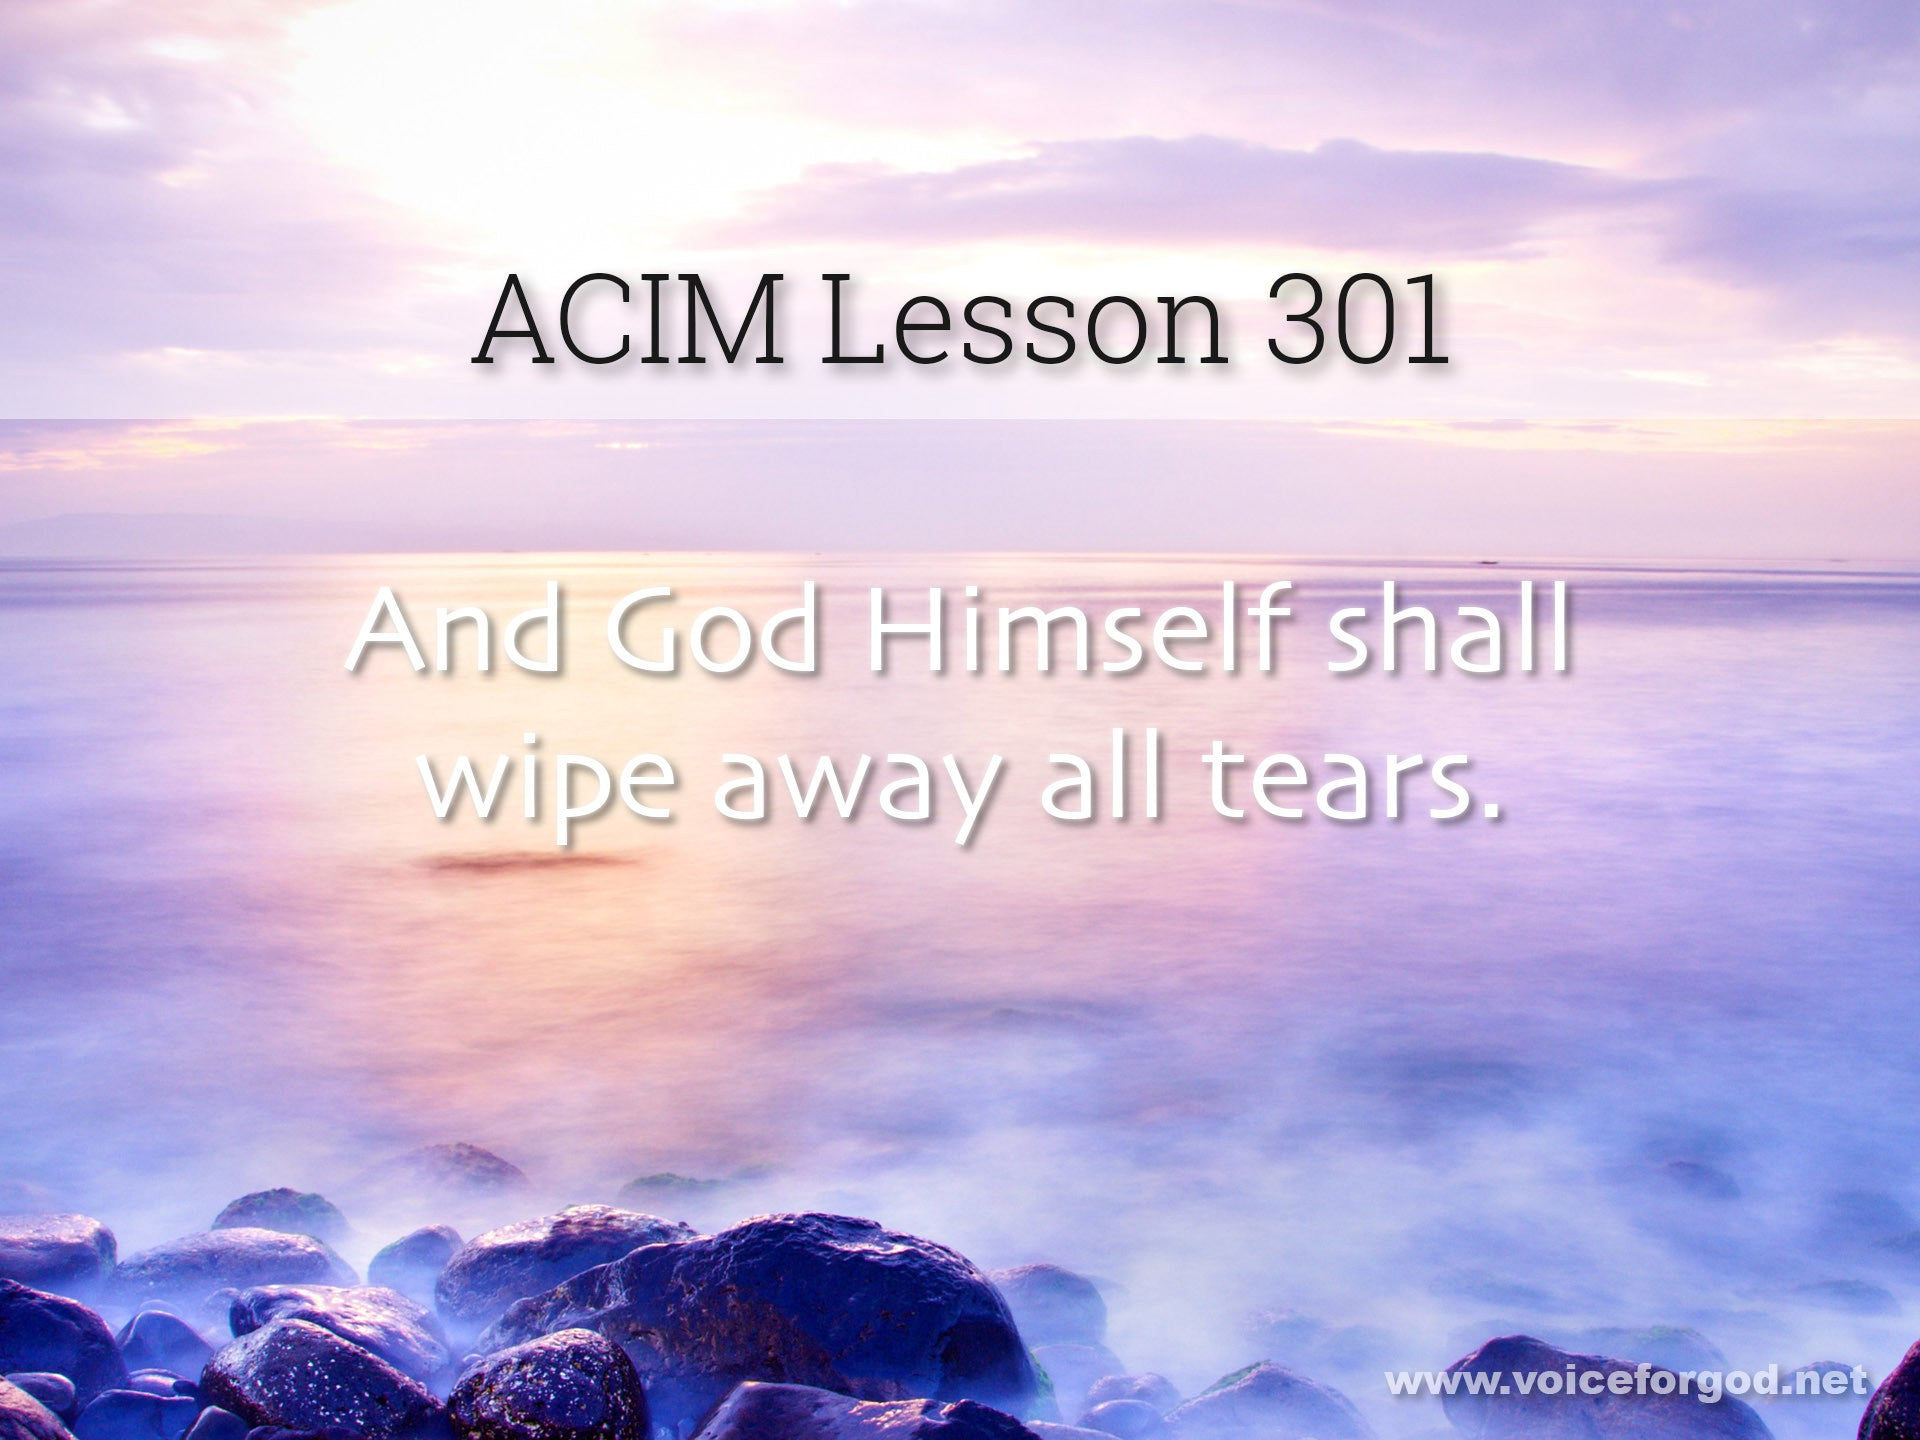 ACIM Lesson 301 - A Course in Miracles Workbook Lesson 301